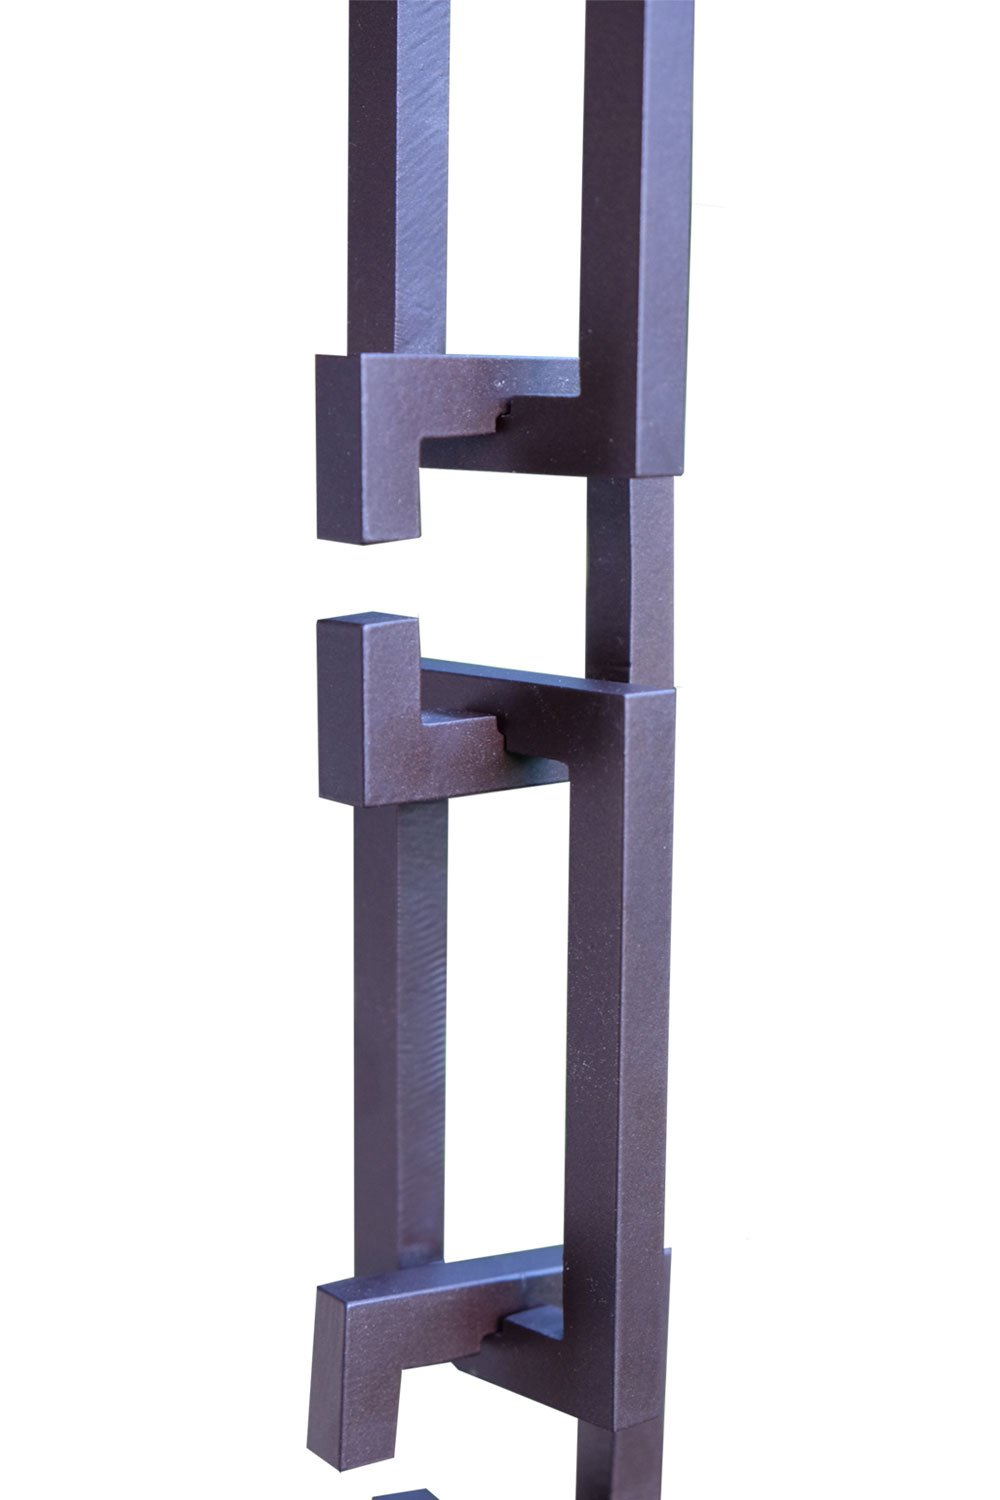 ARCHITECTURAL LINKS RAIN CHAIN - BRONZE WITH INSTALLATION KIT (11 Foot)